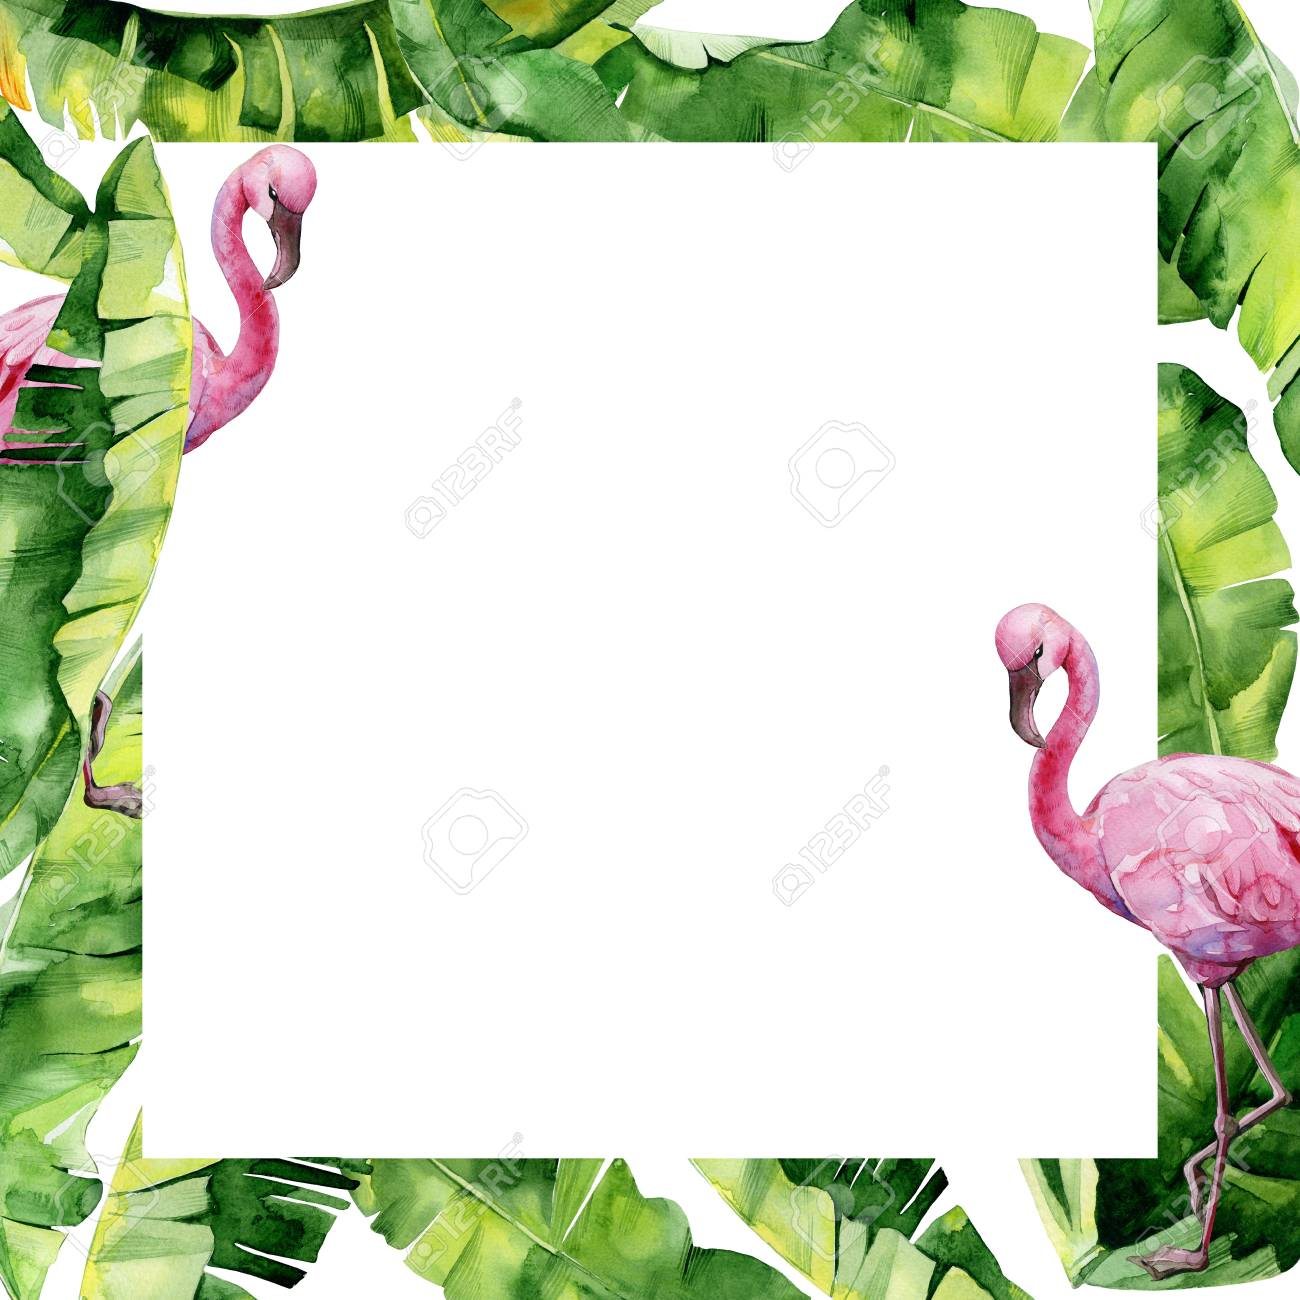 Watercolor Illustration Of Tropical Leaves And Pink Flamingo Stock Photo Picture And Royalty Free Image Image 92269684 Find images of tropical leaves. watercolor illustration of tropical leaves and pink flamingo